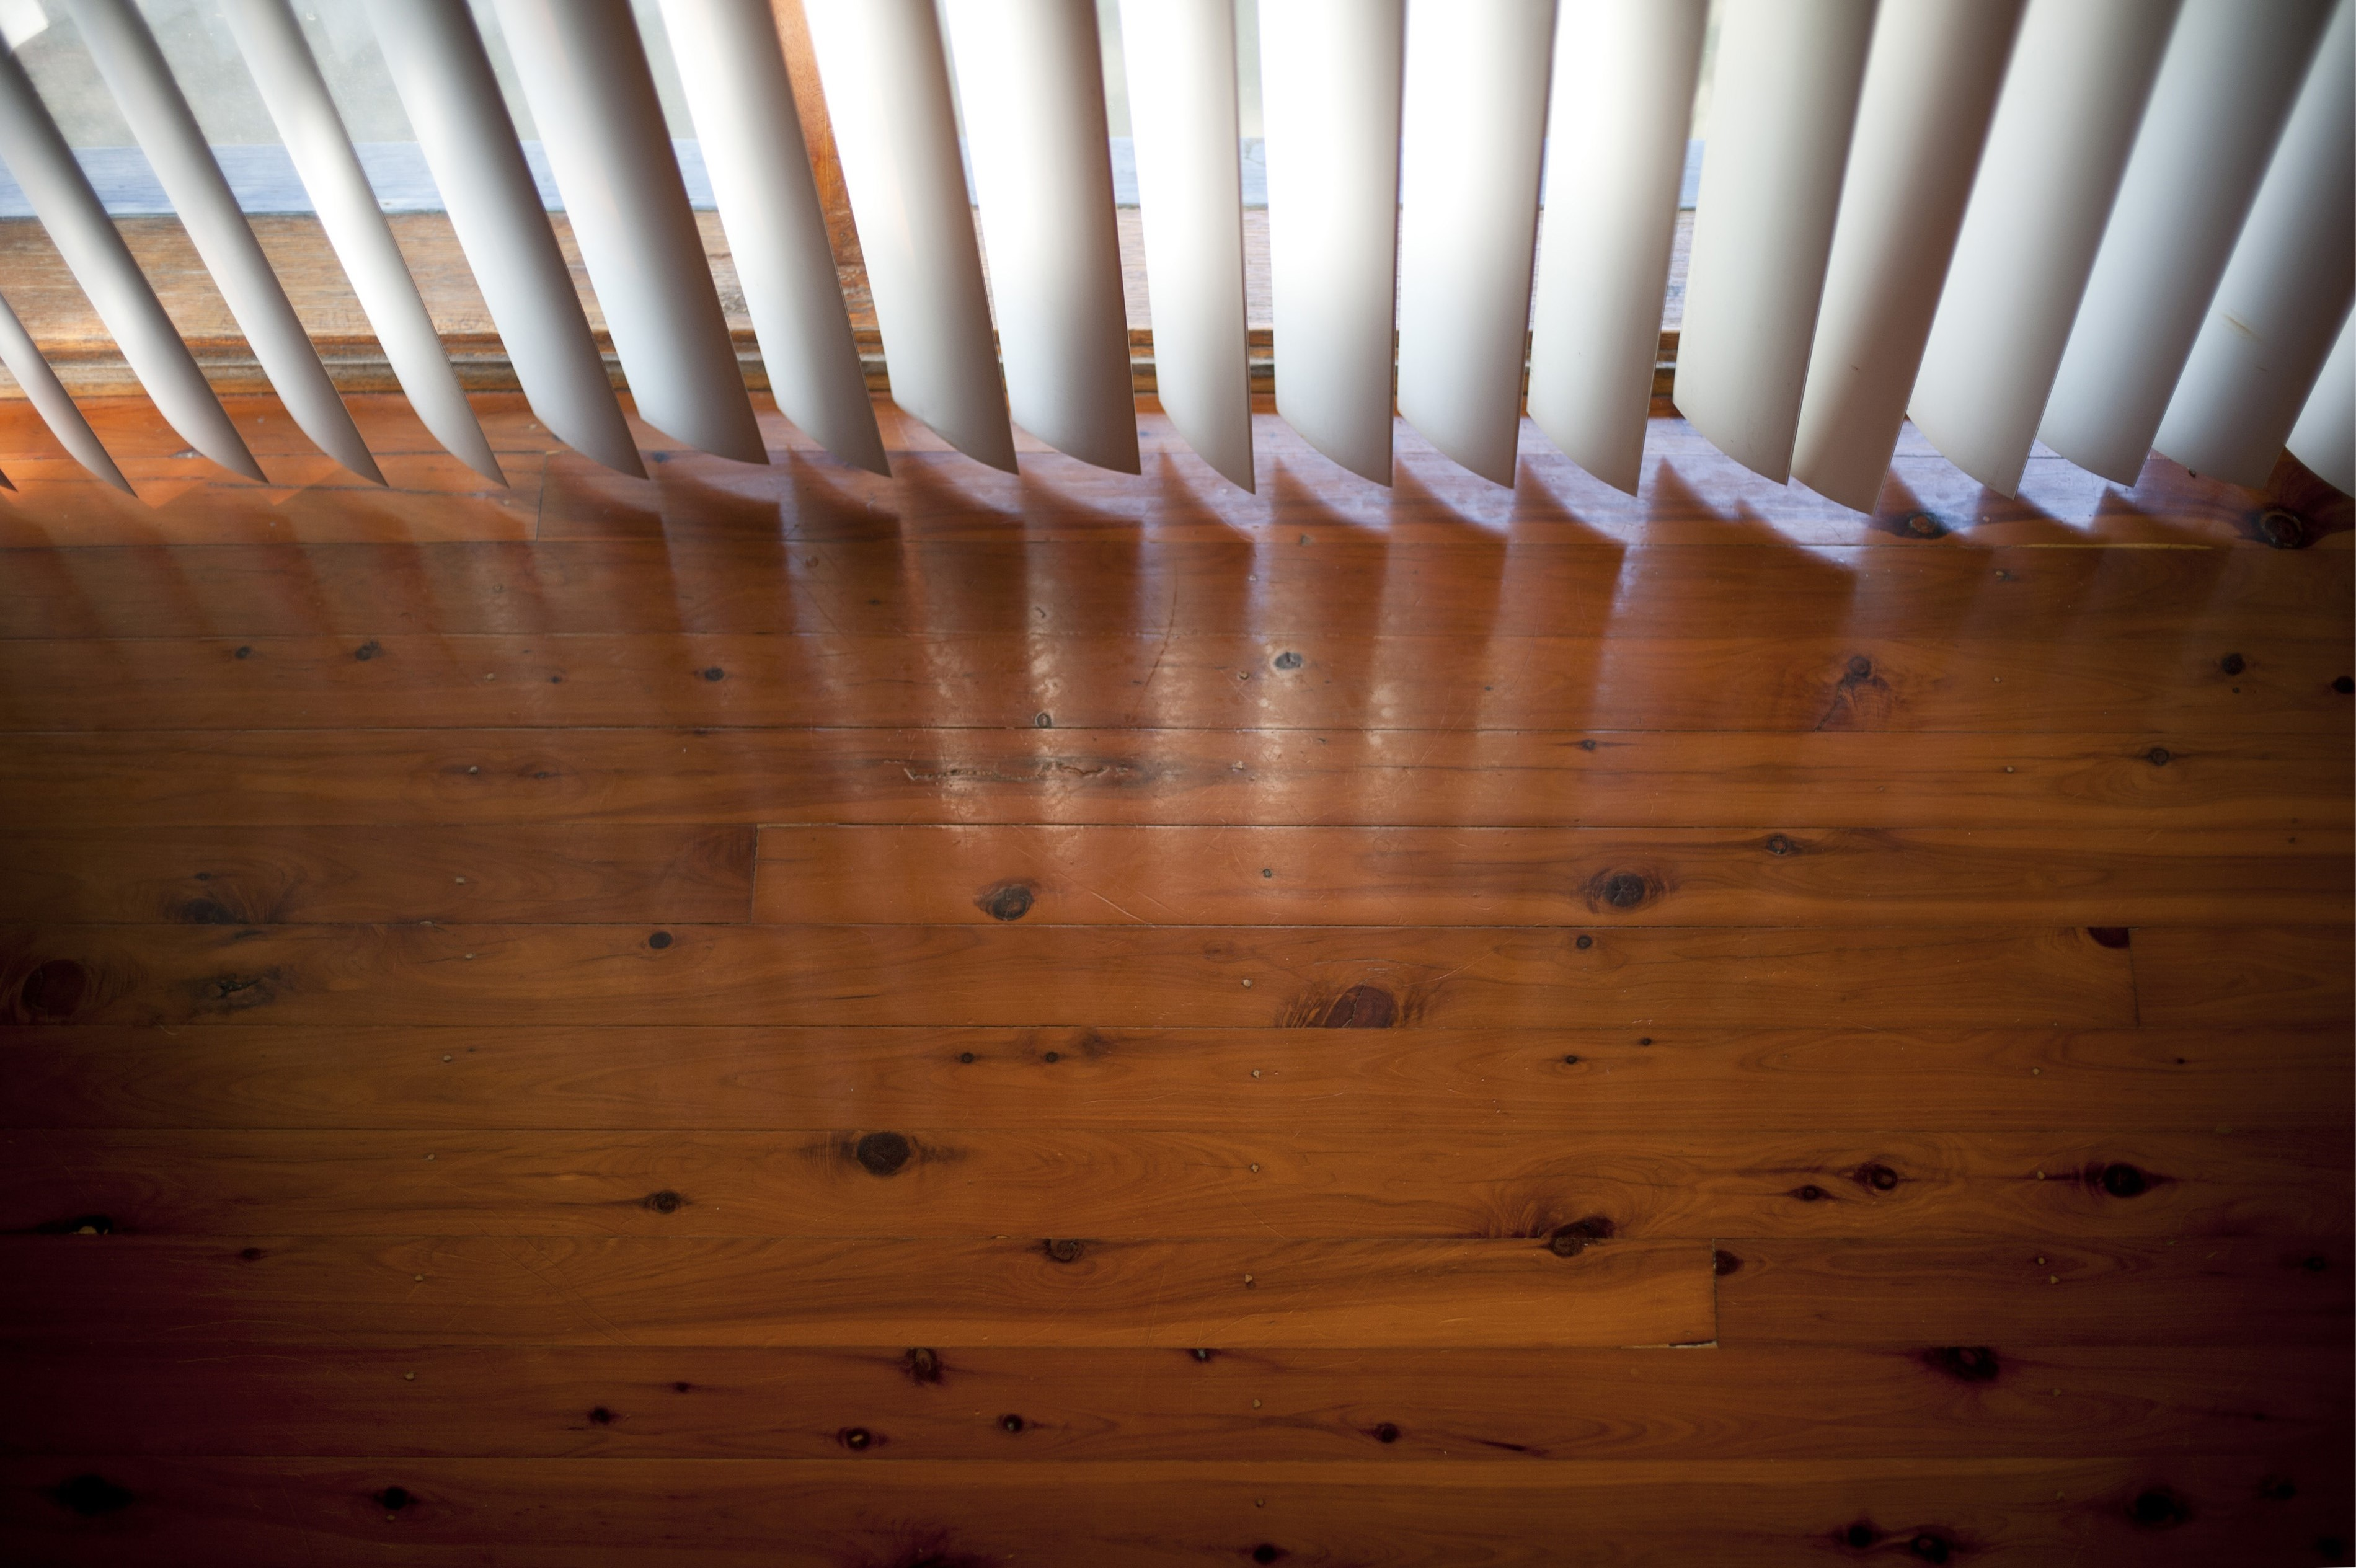 Stained and sealed wooden hardwood interior flooring, high angle view with a vertical blind